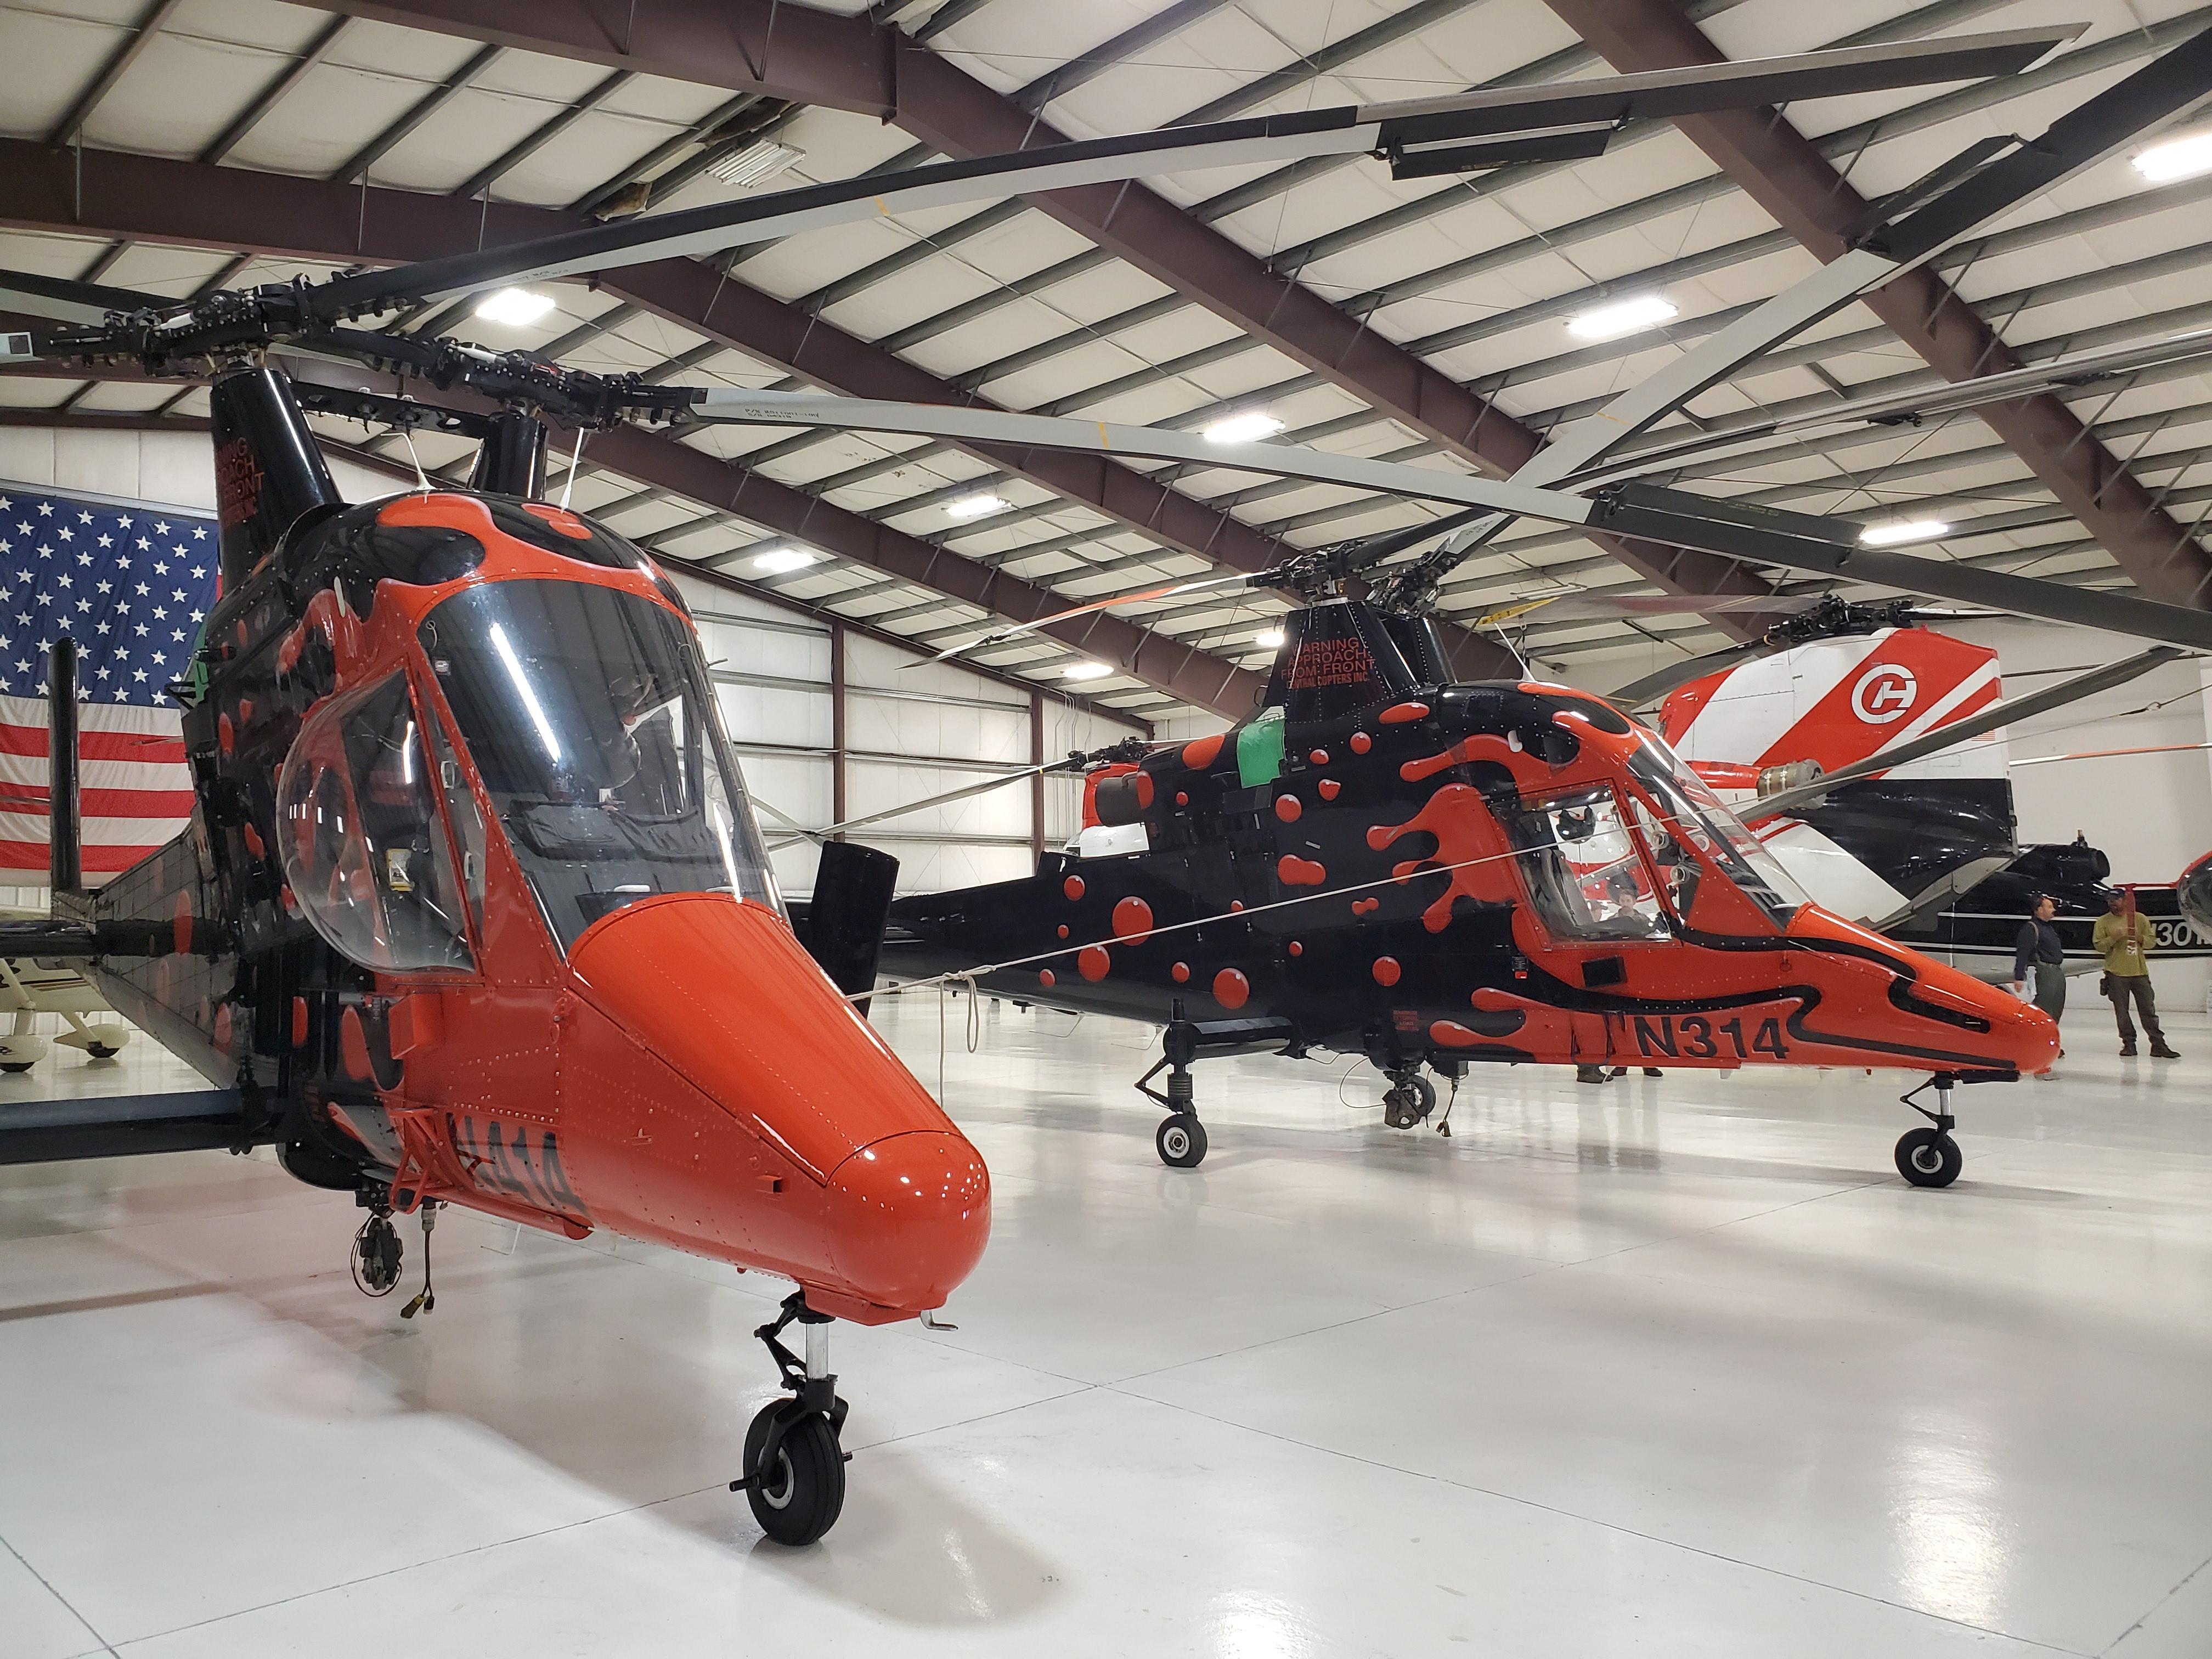 Two black and orange helicopters in a large shelter